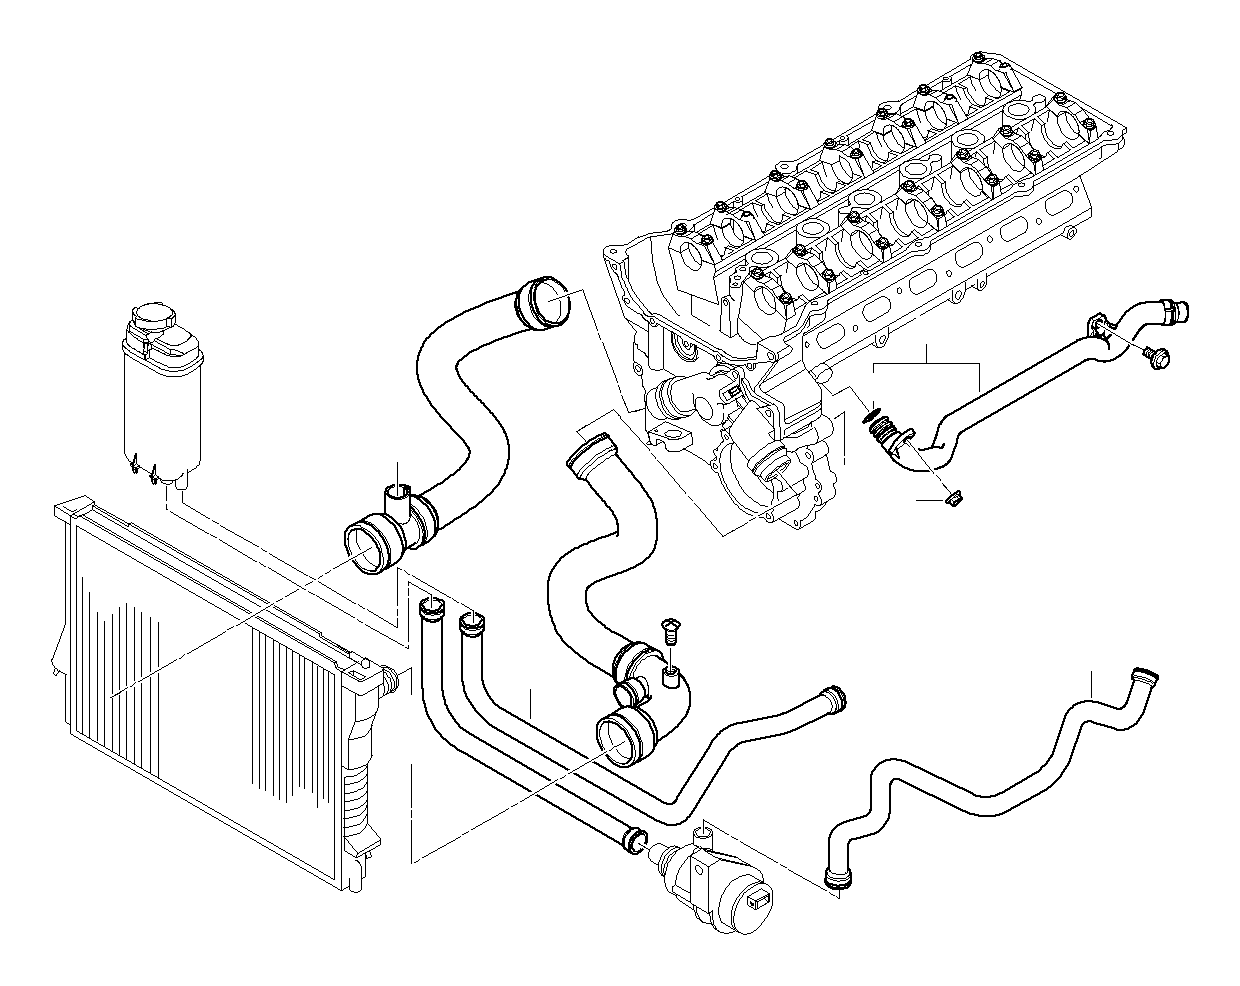 bmw 525i water hose diagram great installation of wiring diagram 1999 BMW 318Ti bmw 528i water hose autom 11531438634 bmw northwest bmw coolant hose diagram 2004 bmw 325i hose